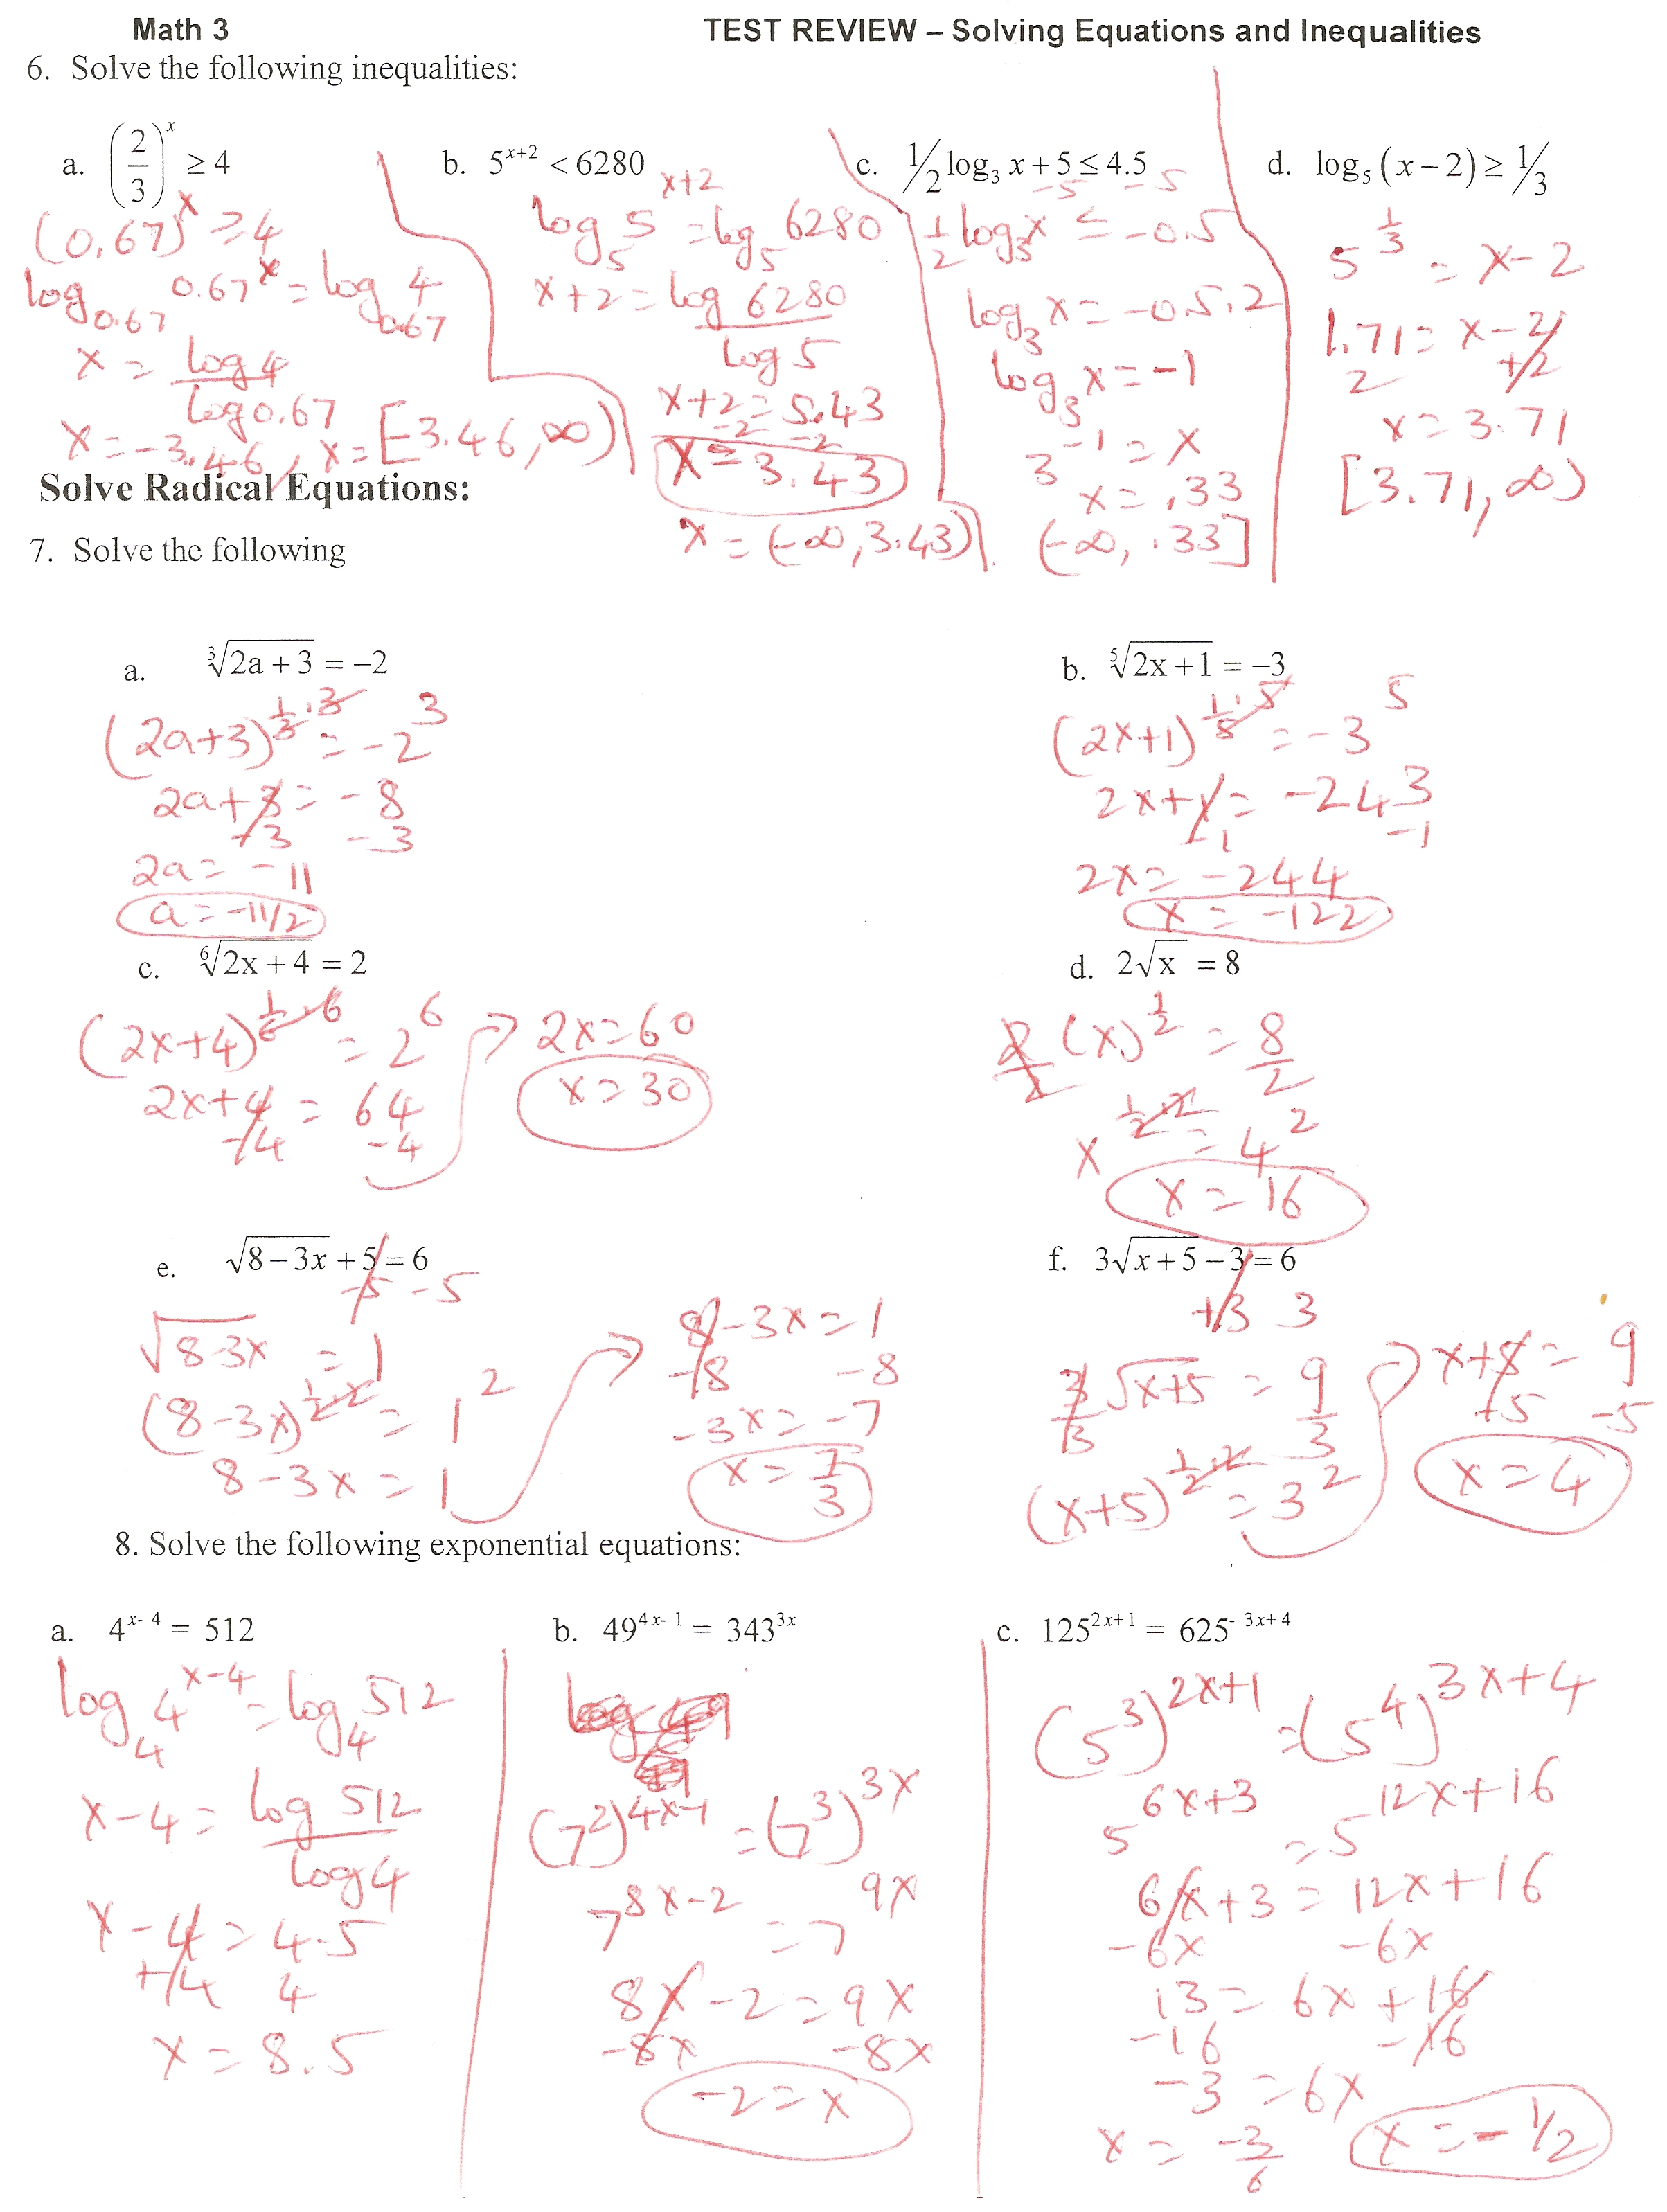 Free Worksheet Exponential And Logarithmic Equations Worksheet exponential and logarithmic equations inequalities worksheet dr yadavalli december 2012 worksheet